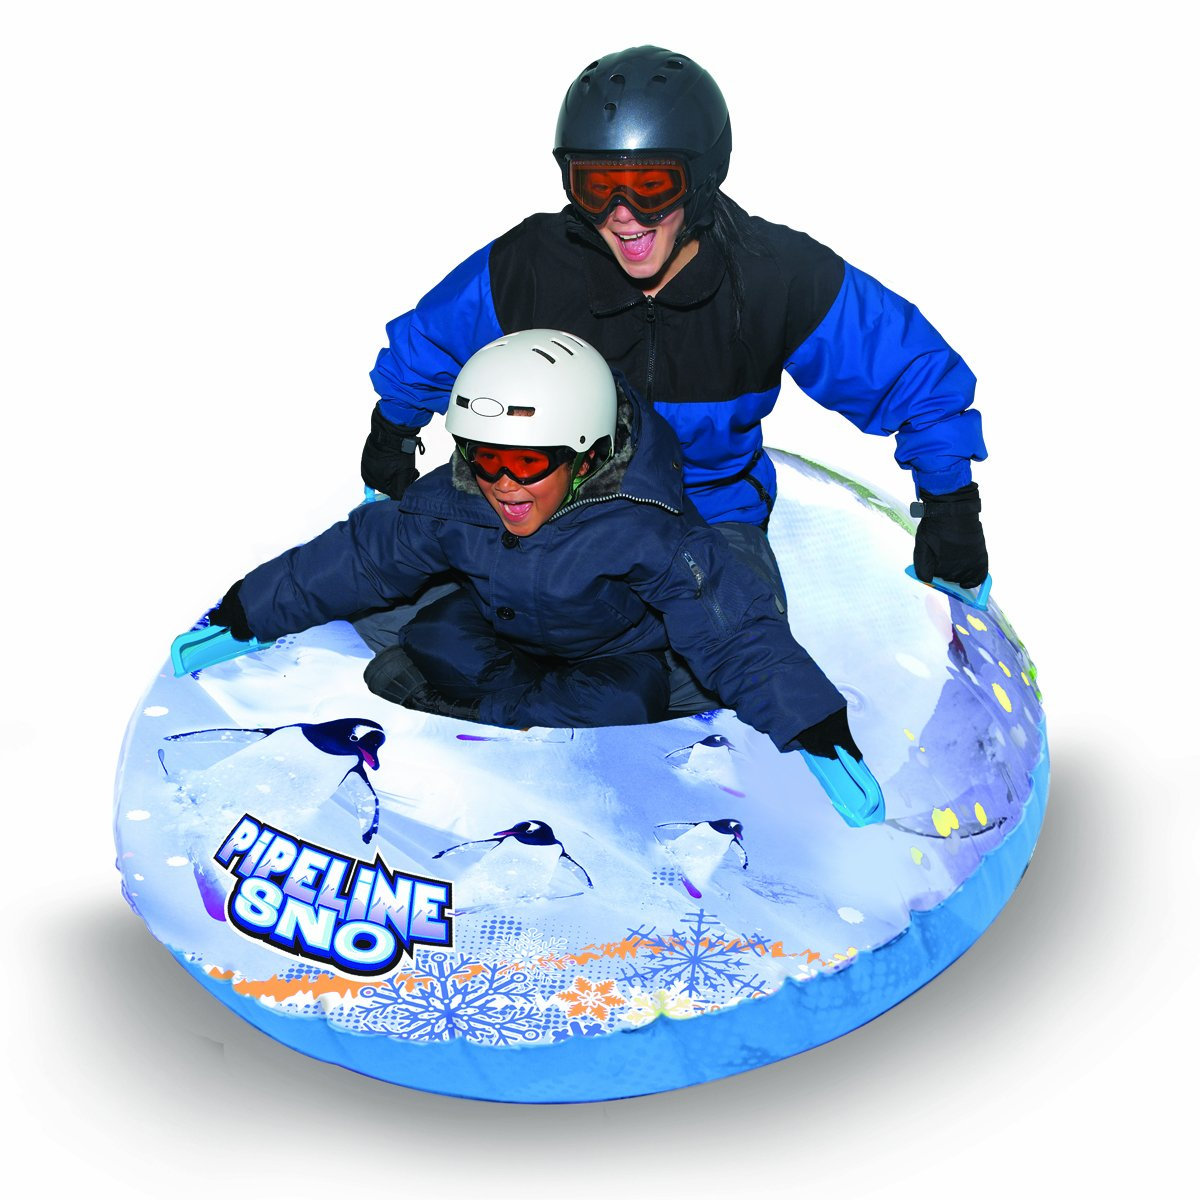 Pipeline Sno Penguin Inflatable Snow Tube, 50'' Diameter, Clear/White/Blue